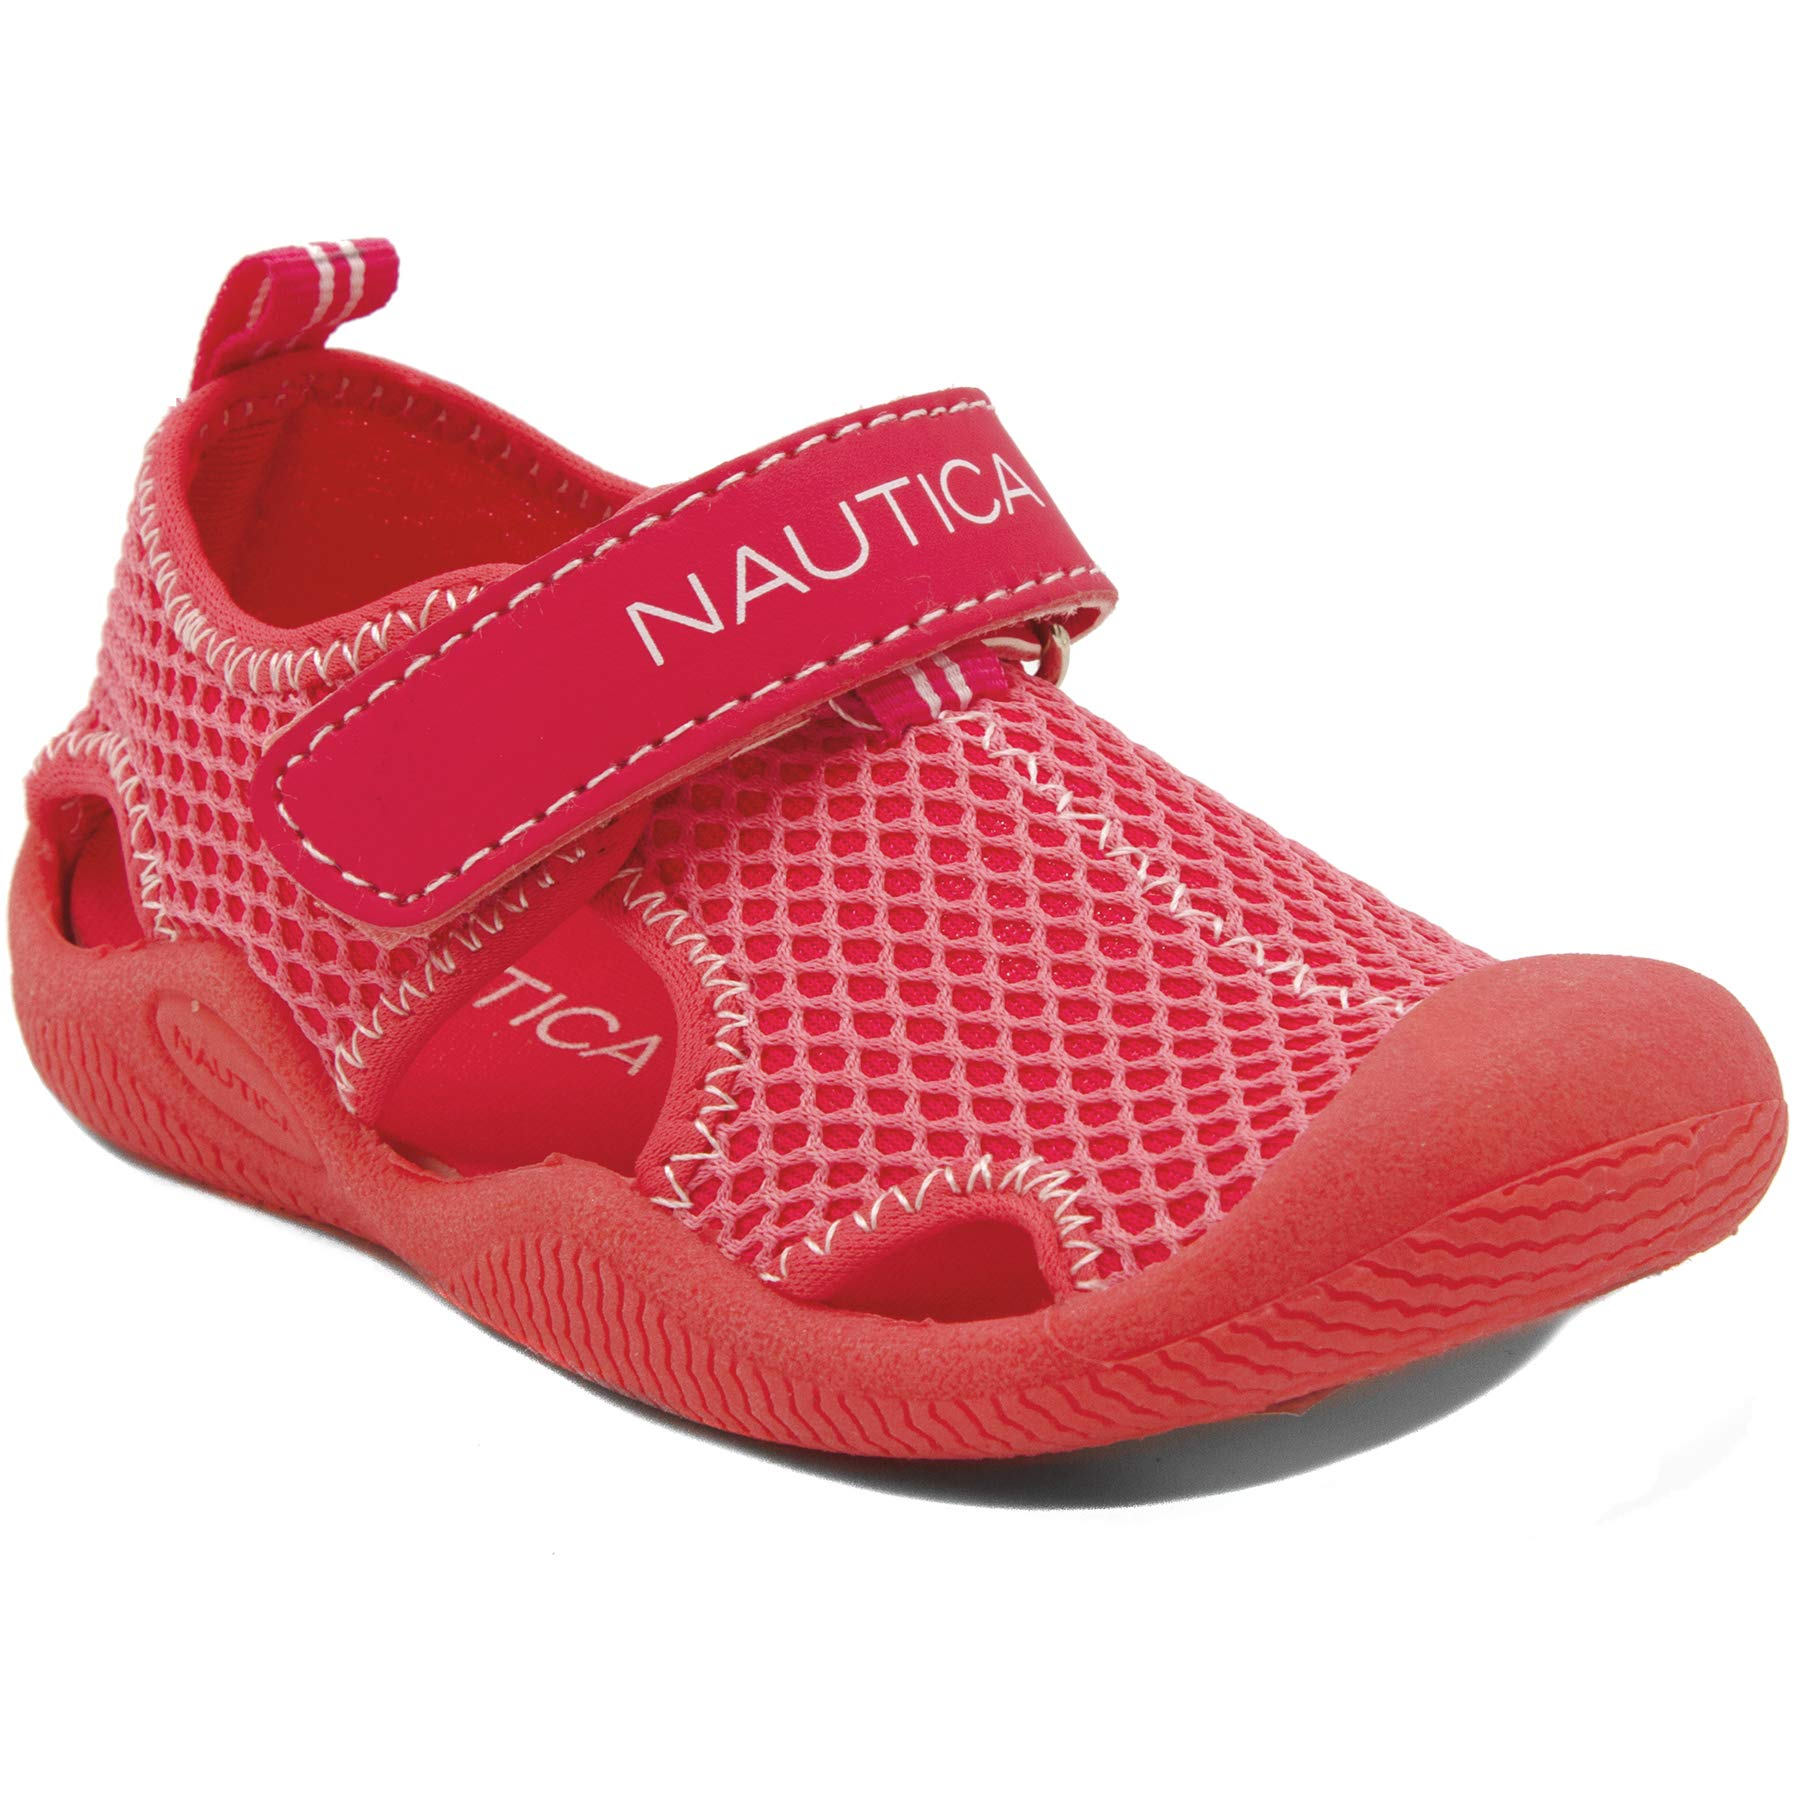 Nautica Kids Kettle Gulf Protective Water Shoe,Closed-Toe Sport Sandal-Pink/LT Pink-7 by Nautica (Image #1)